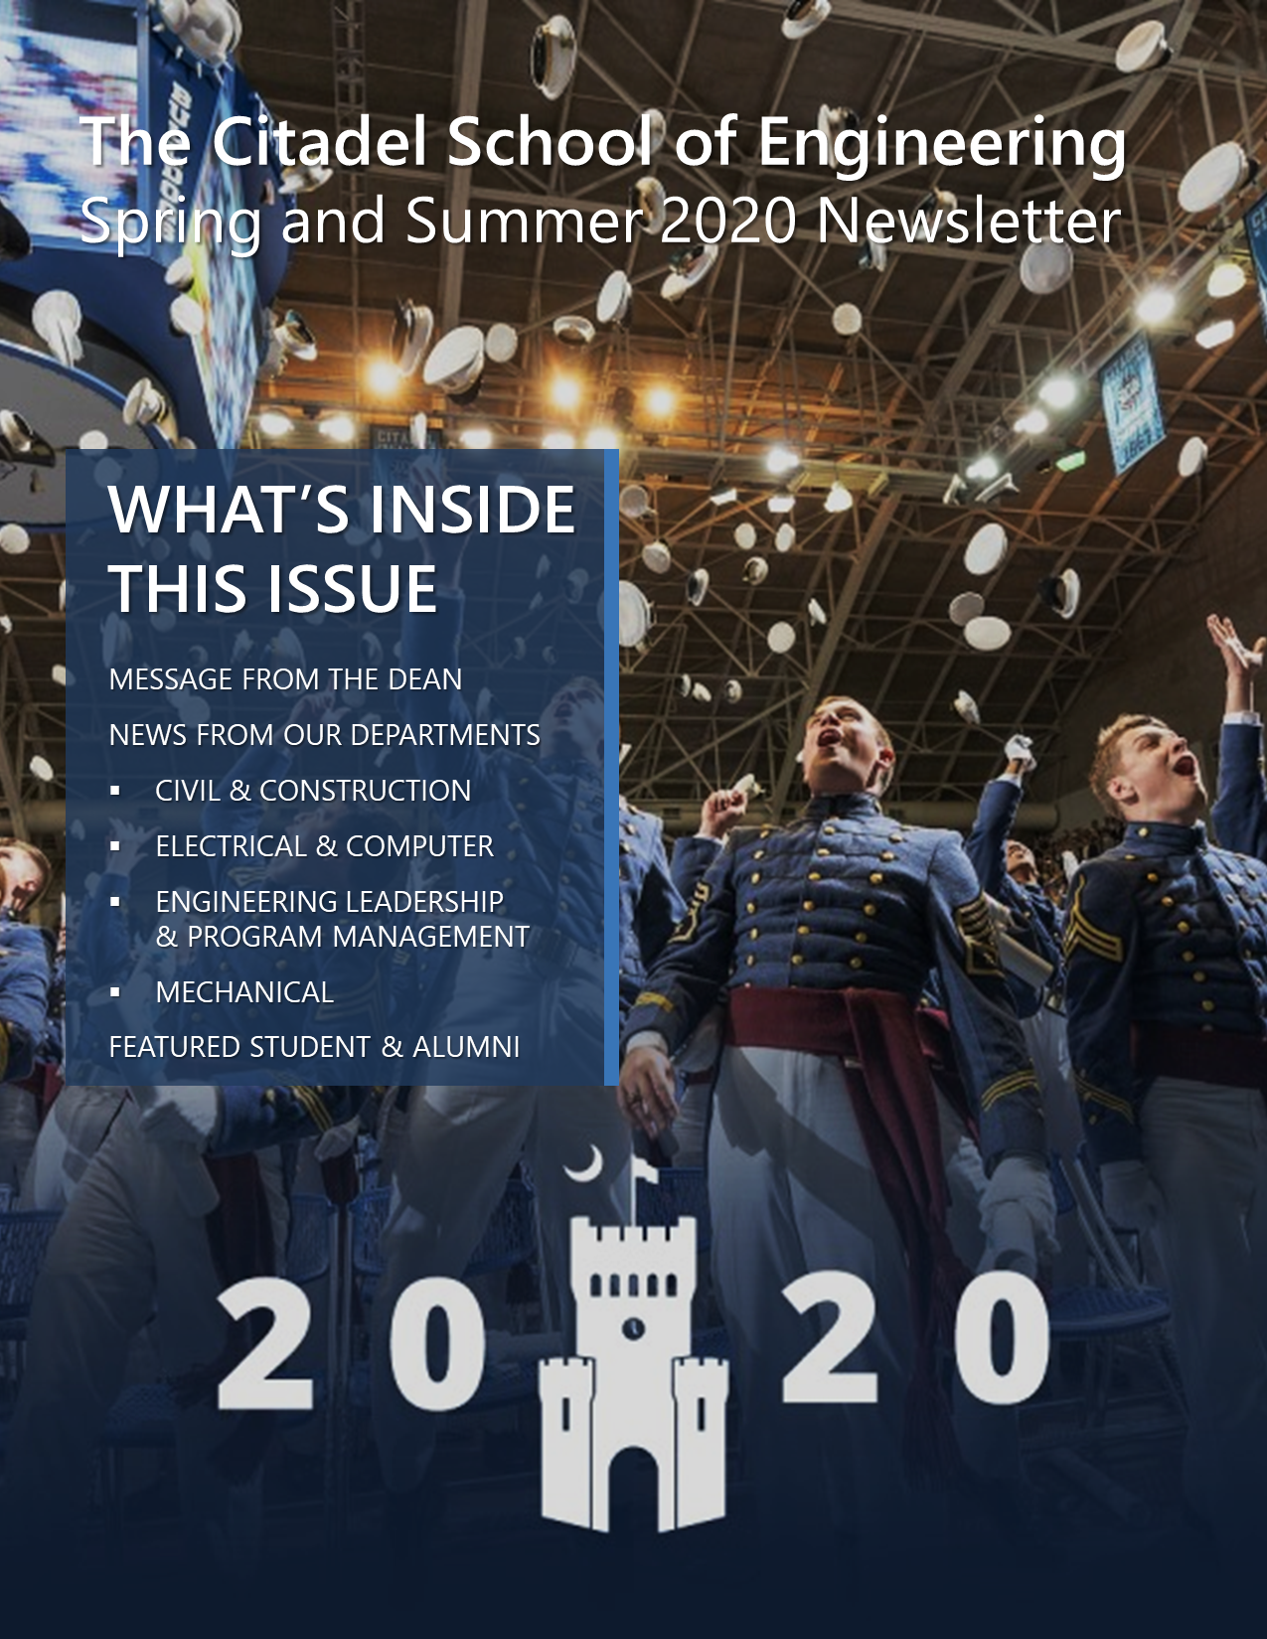 Spring and Summer 2020 Newsletter